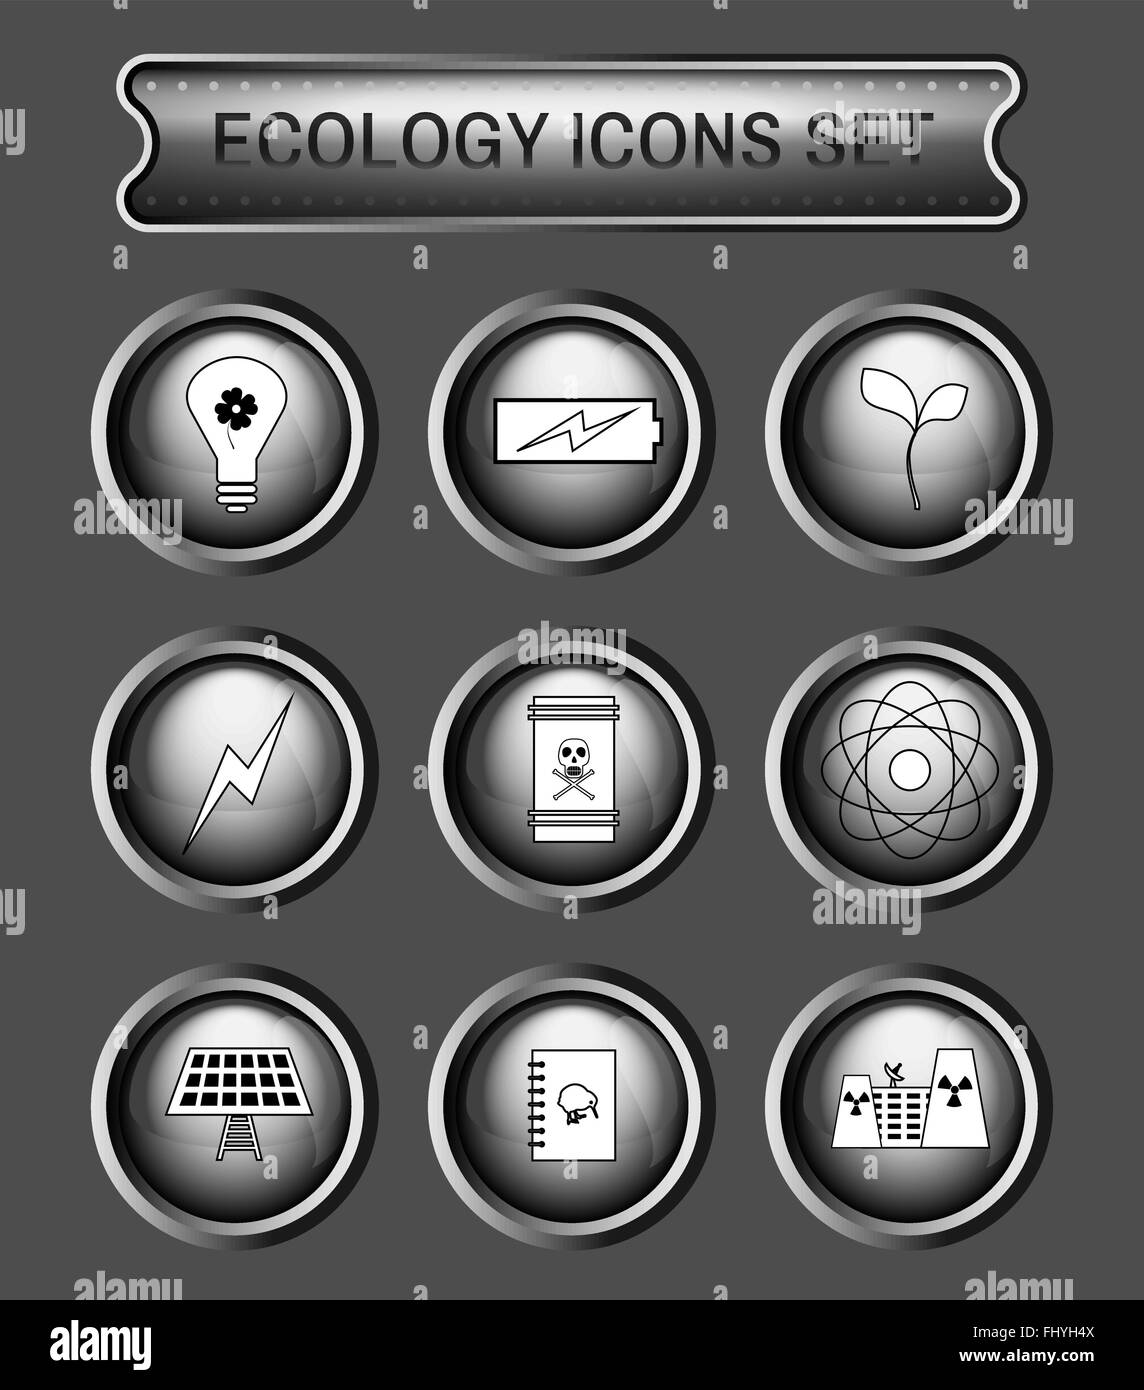 Ecology Icons Set on Gray Round Buttons. Digital background vector logotypes set. - Stock Image